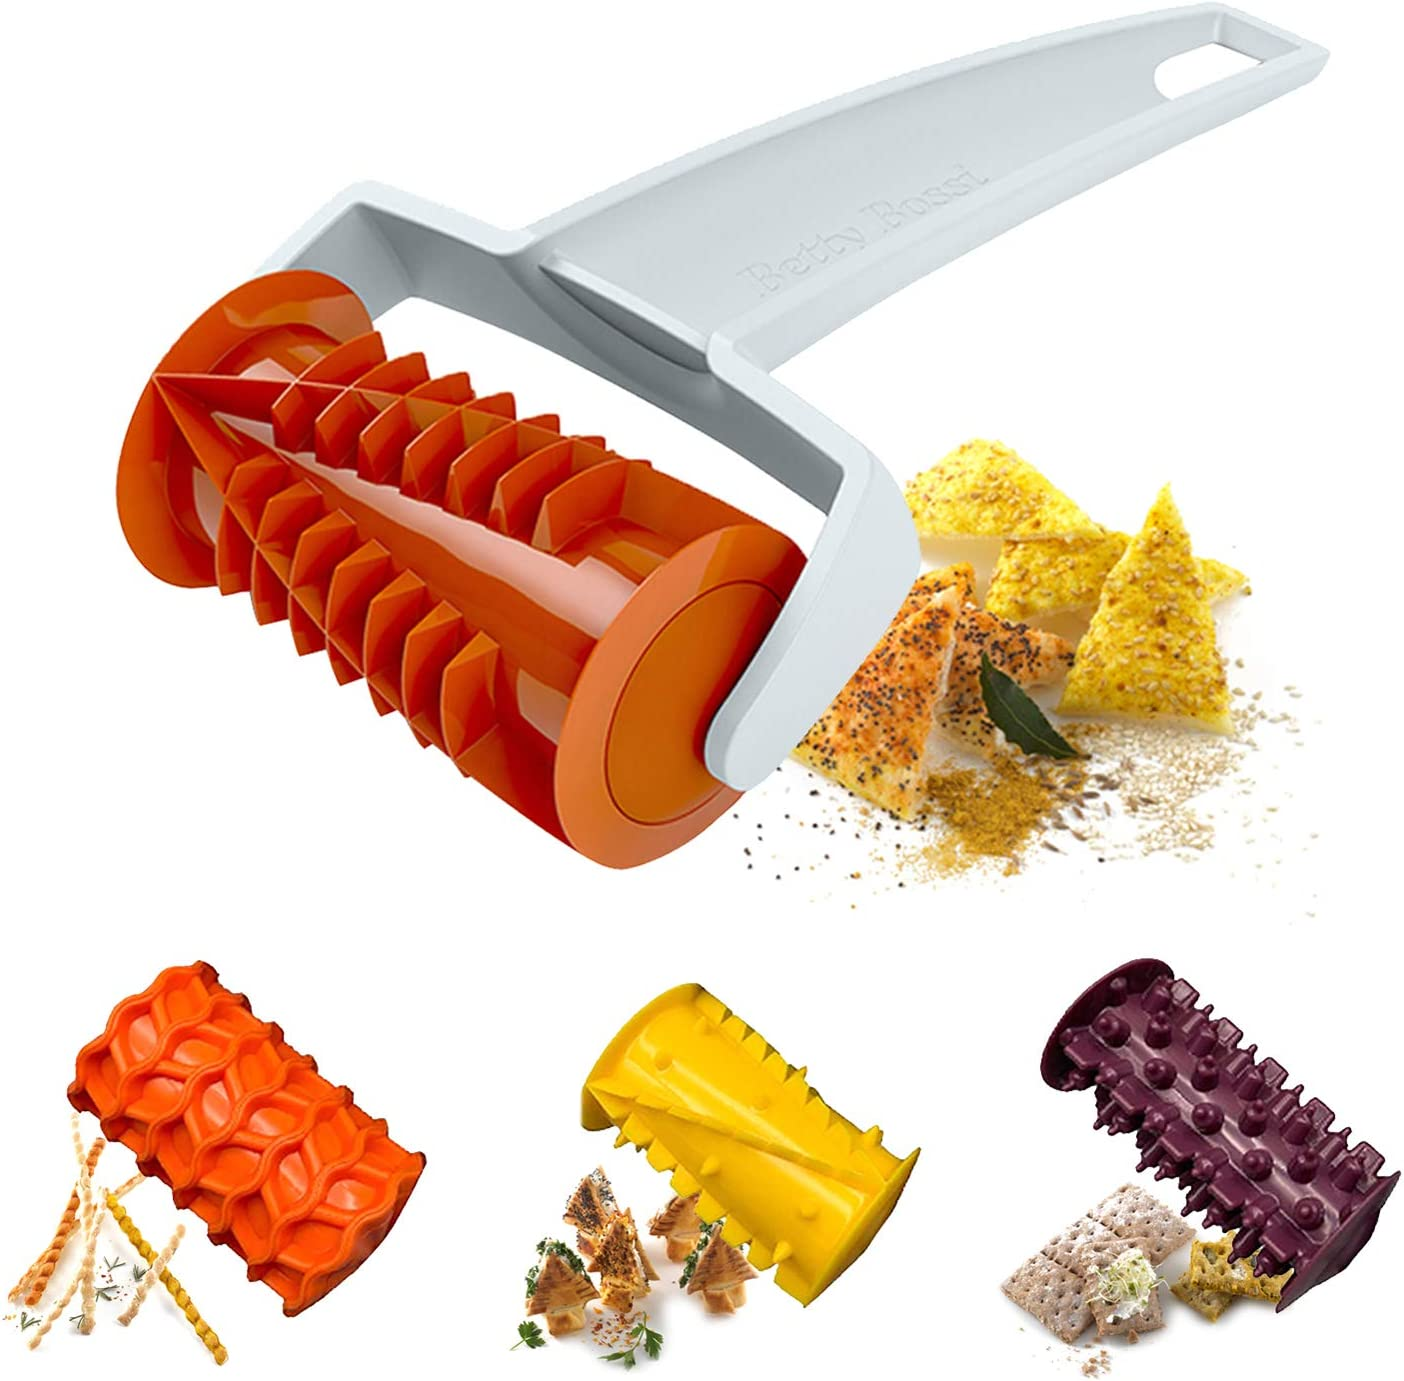 Biscuit Roller Cutter, Cookie Pizza Pastry Lattice Cutting tool , 4 Different Gears Embosser Set for Household Baking